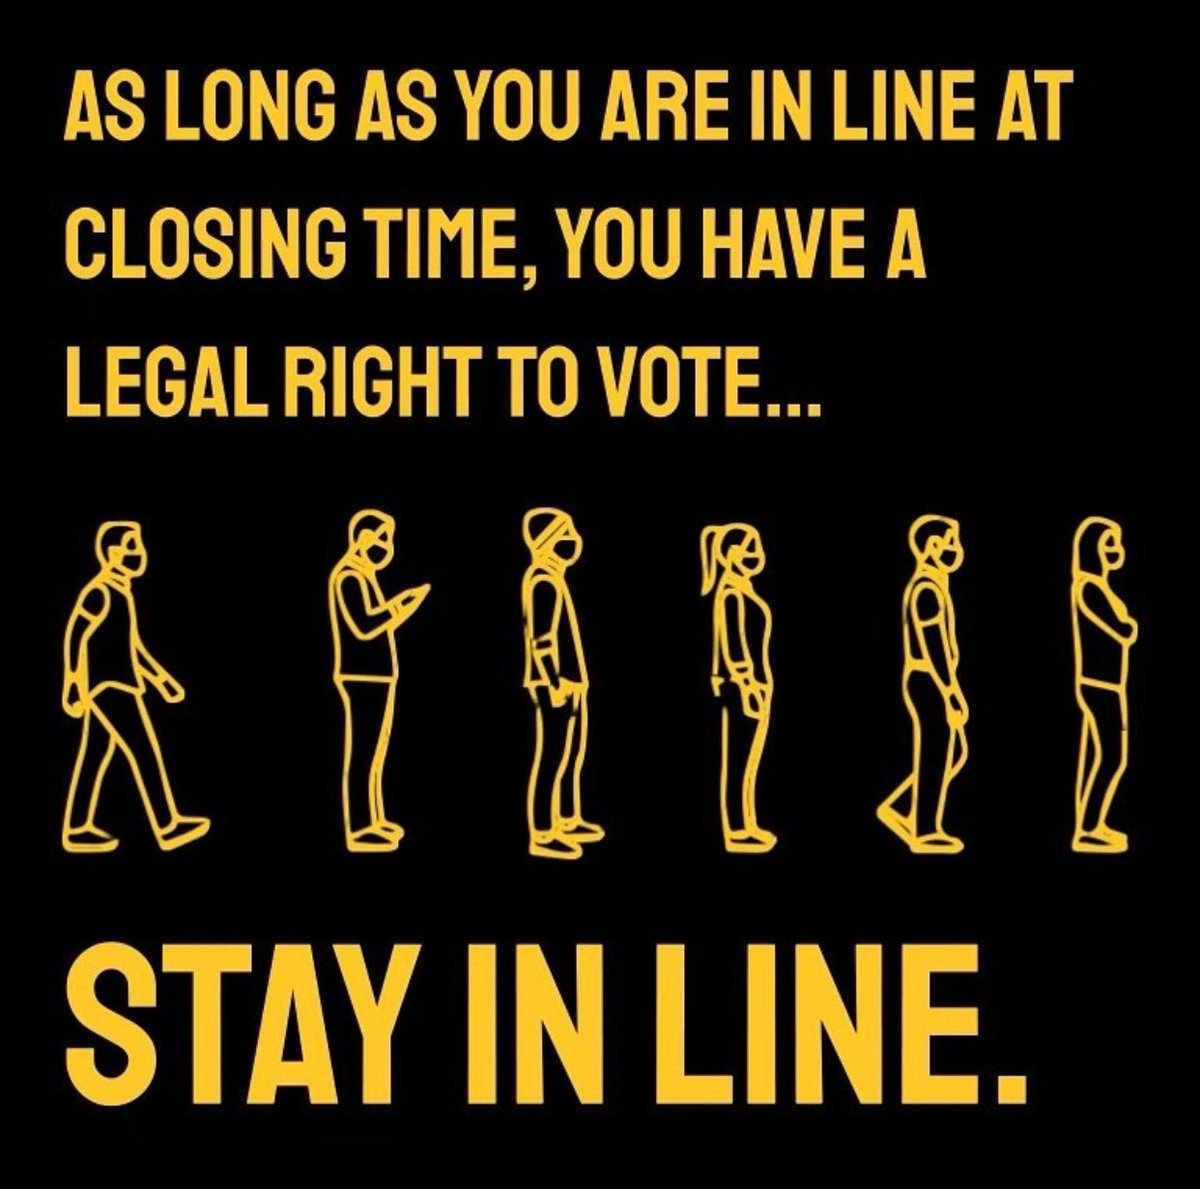 KNOW YOUR RIGHTS! 866-OurVote is here to help you TODAY. Your vote matters and deserves to be counted! If you have questions OR need to report any issues at the polls, call one of these numbers 866-Our-Vote has provided #electionprotection #CountEveryVote #VOTE